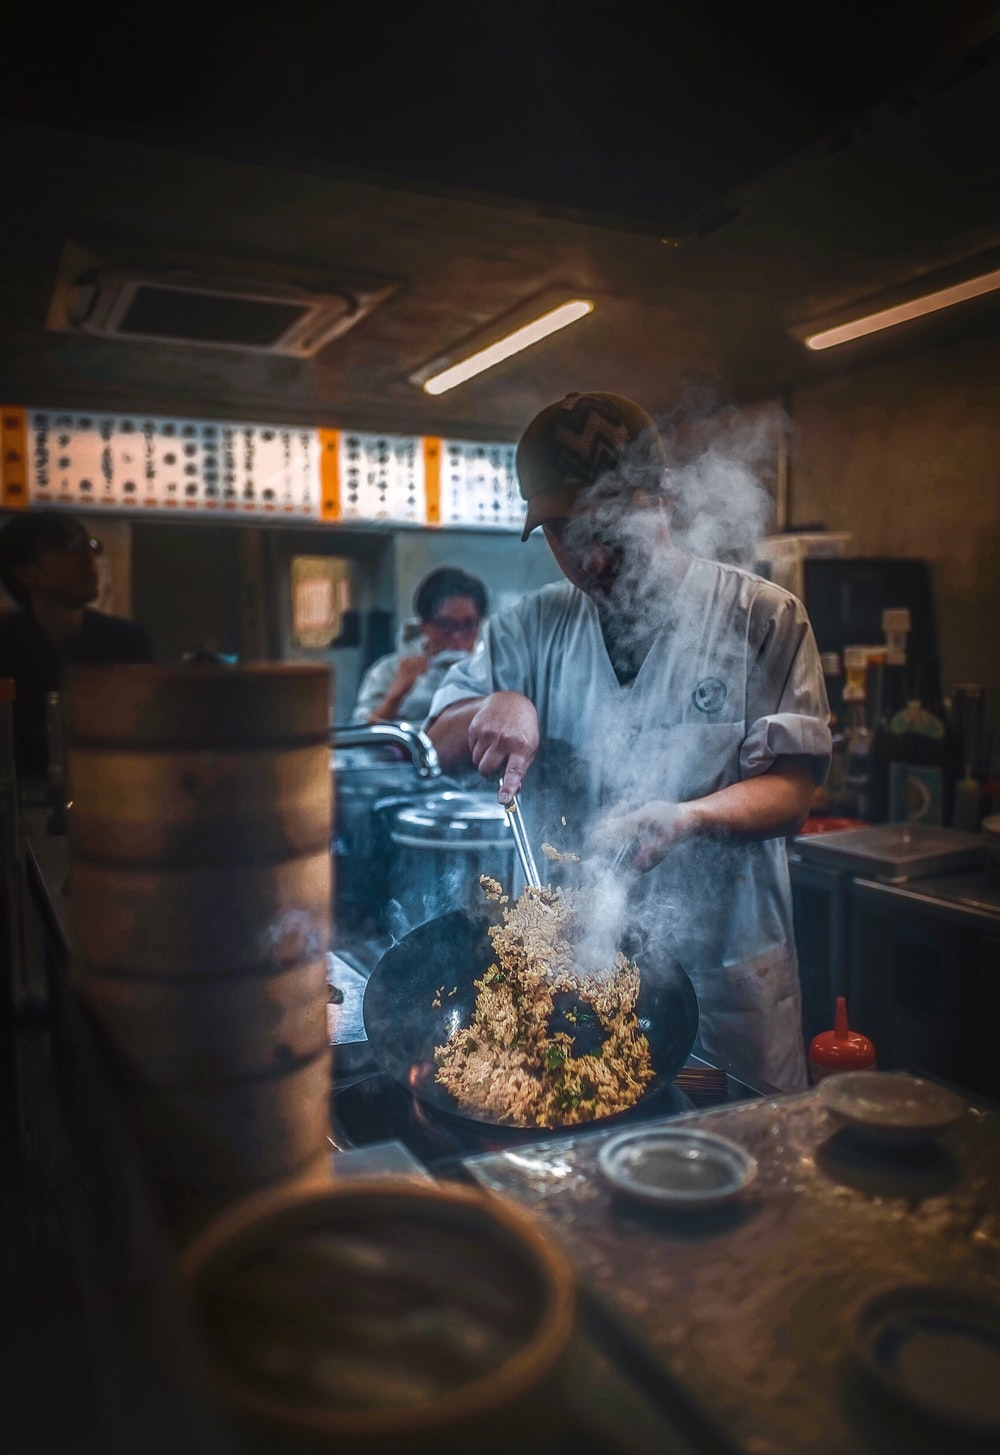 man standing while cooking food near people sitting